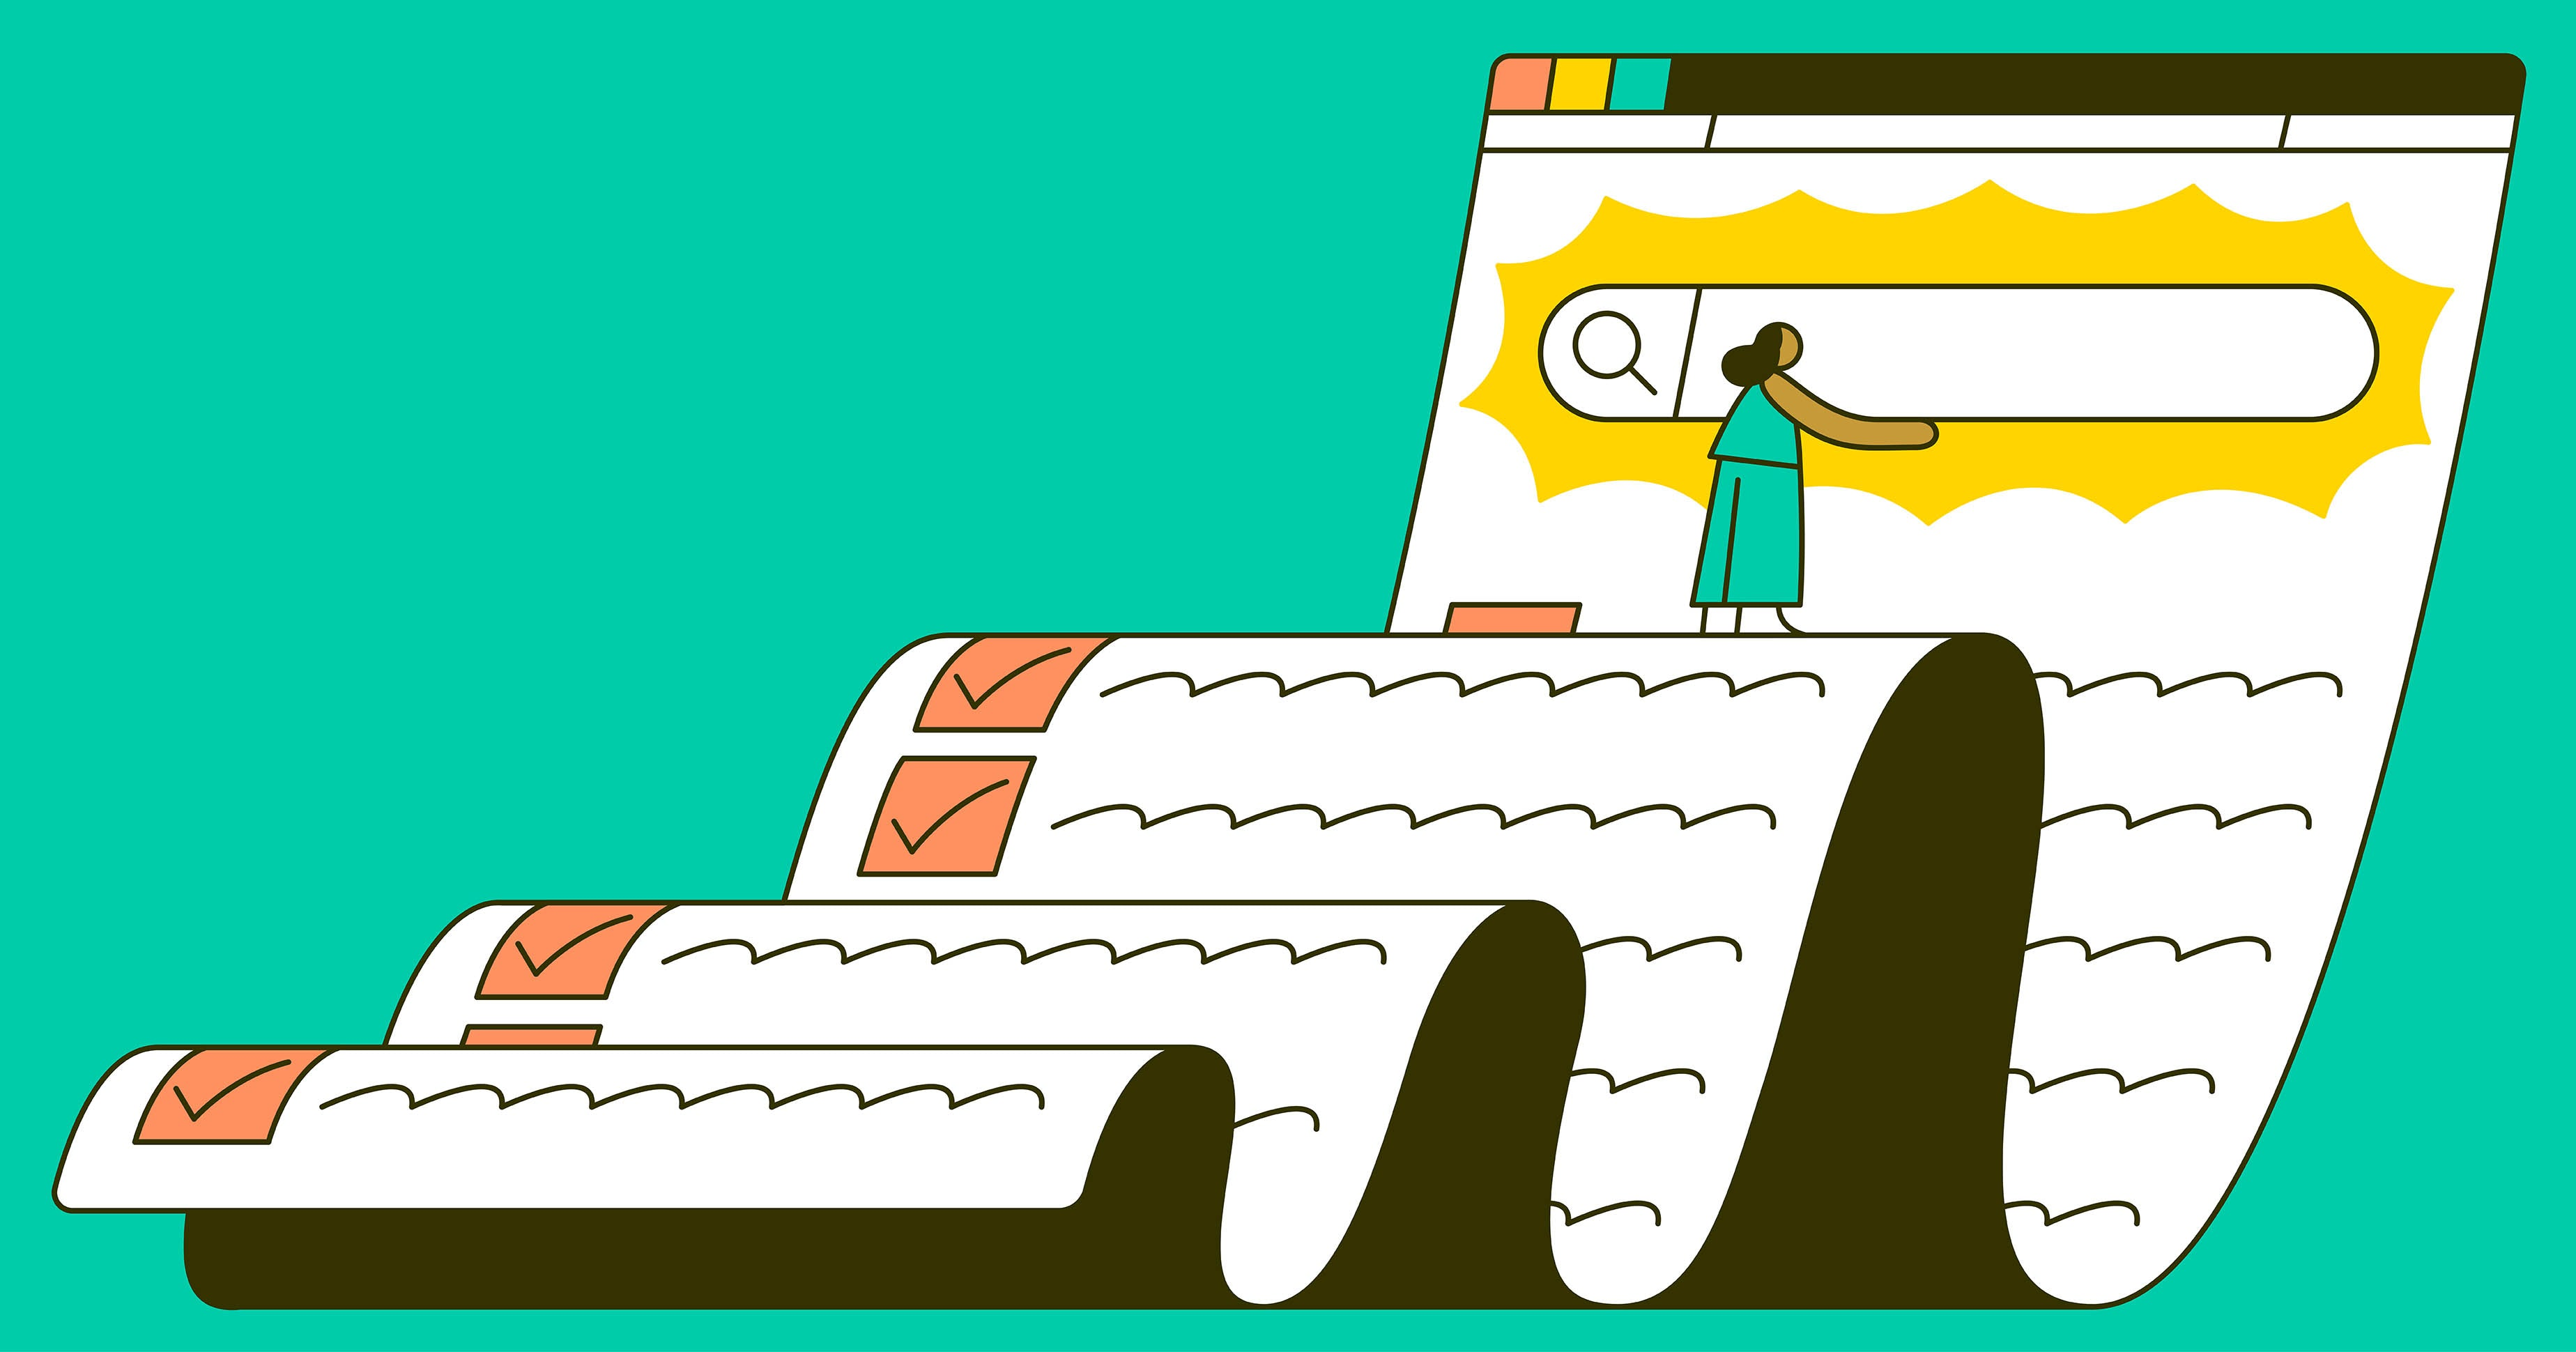 An illustration of a scroll like checklist full of SEO ideas to apply to your website to get it ranking